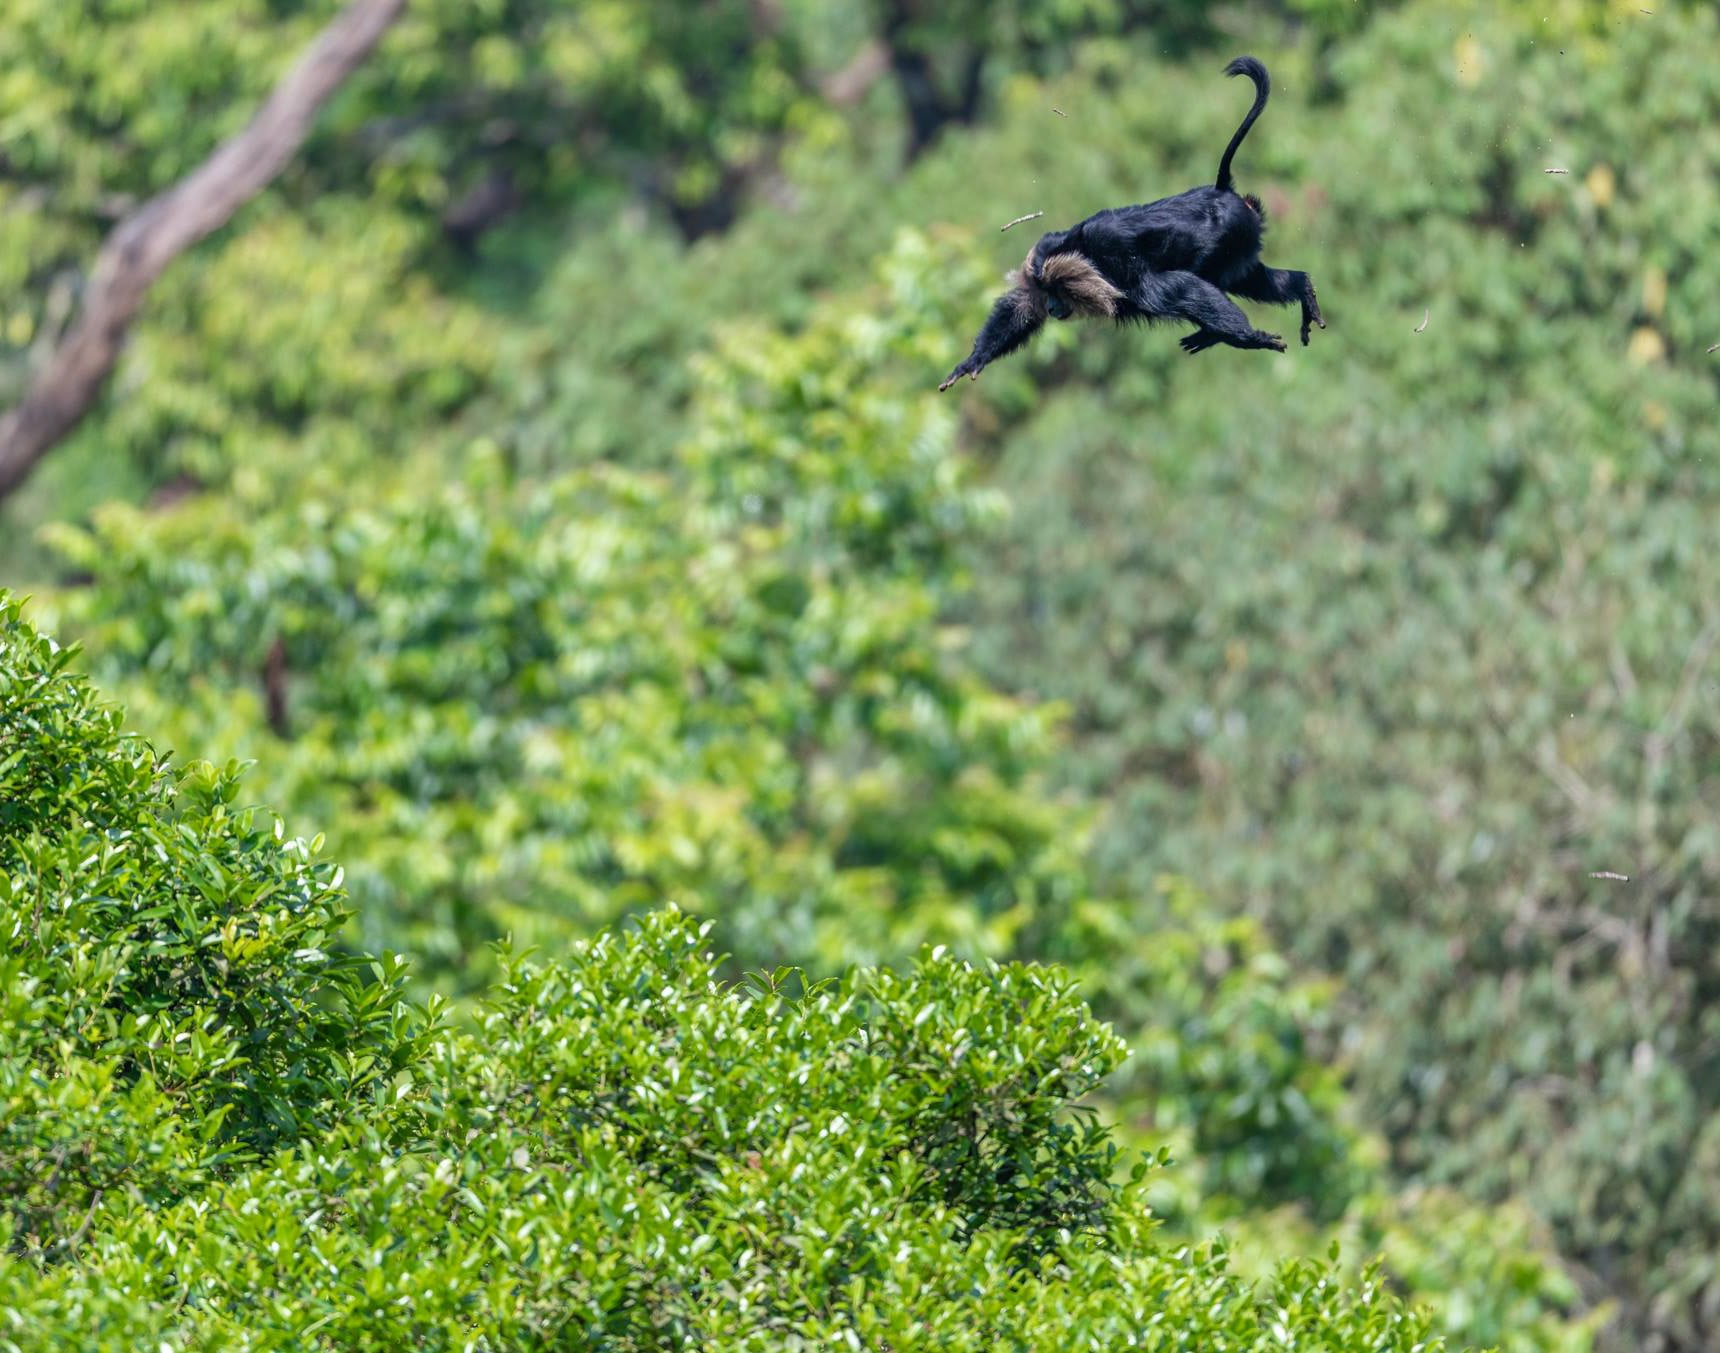 Lion-tailed macaques are skilled climbers and can cover a large distance in a single leap. This lion-tailed macaque was caught mid-air in Nelliyampathy, Kerala, which has one of the largest populations of lion-tailed macaques in the country. Photo: Amal George